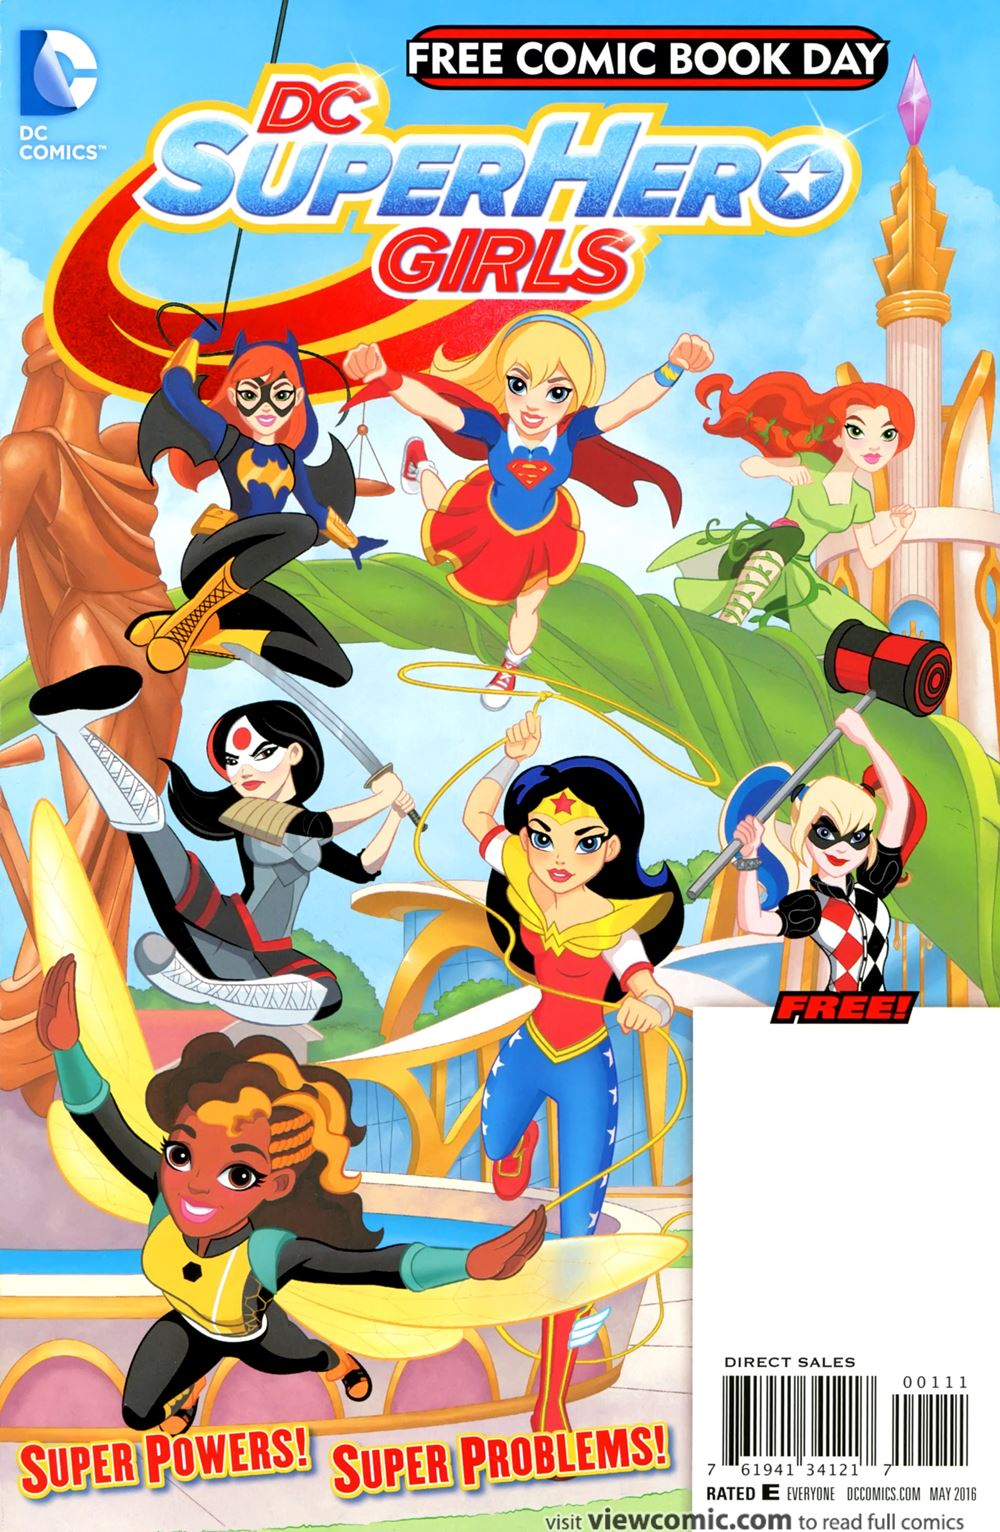 free comic book day 2016 dc superhero girls 01 special edition